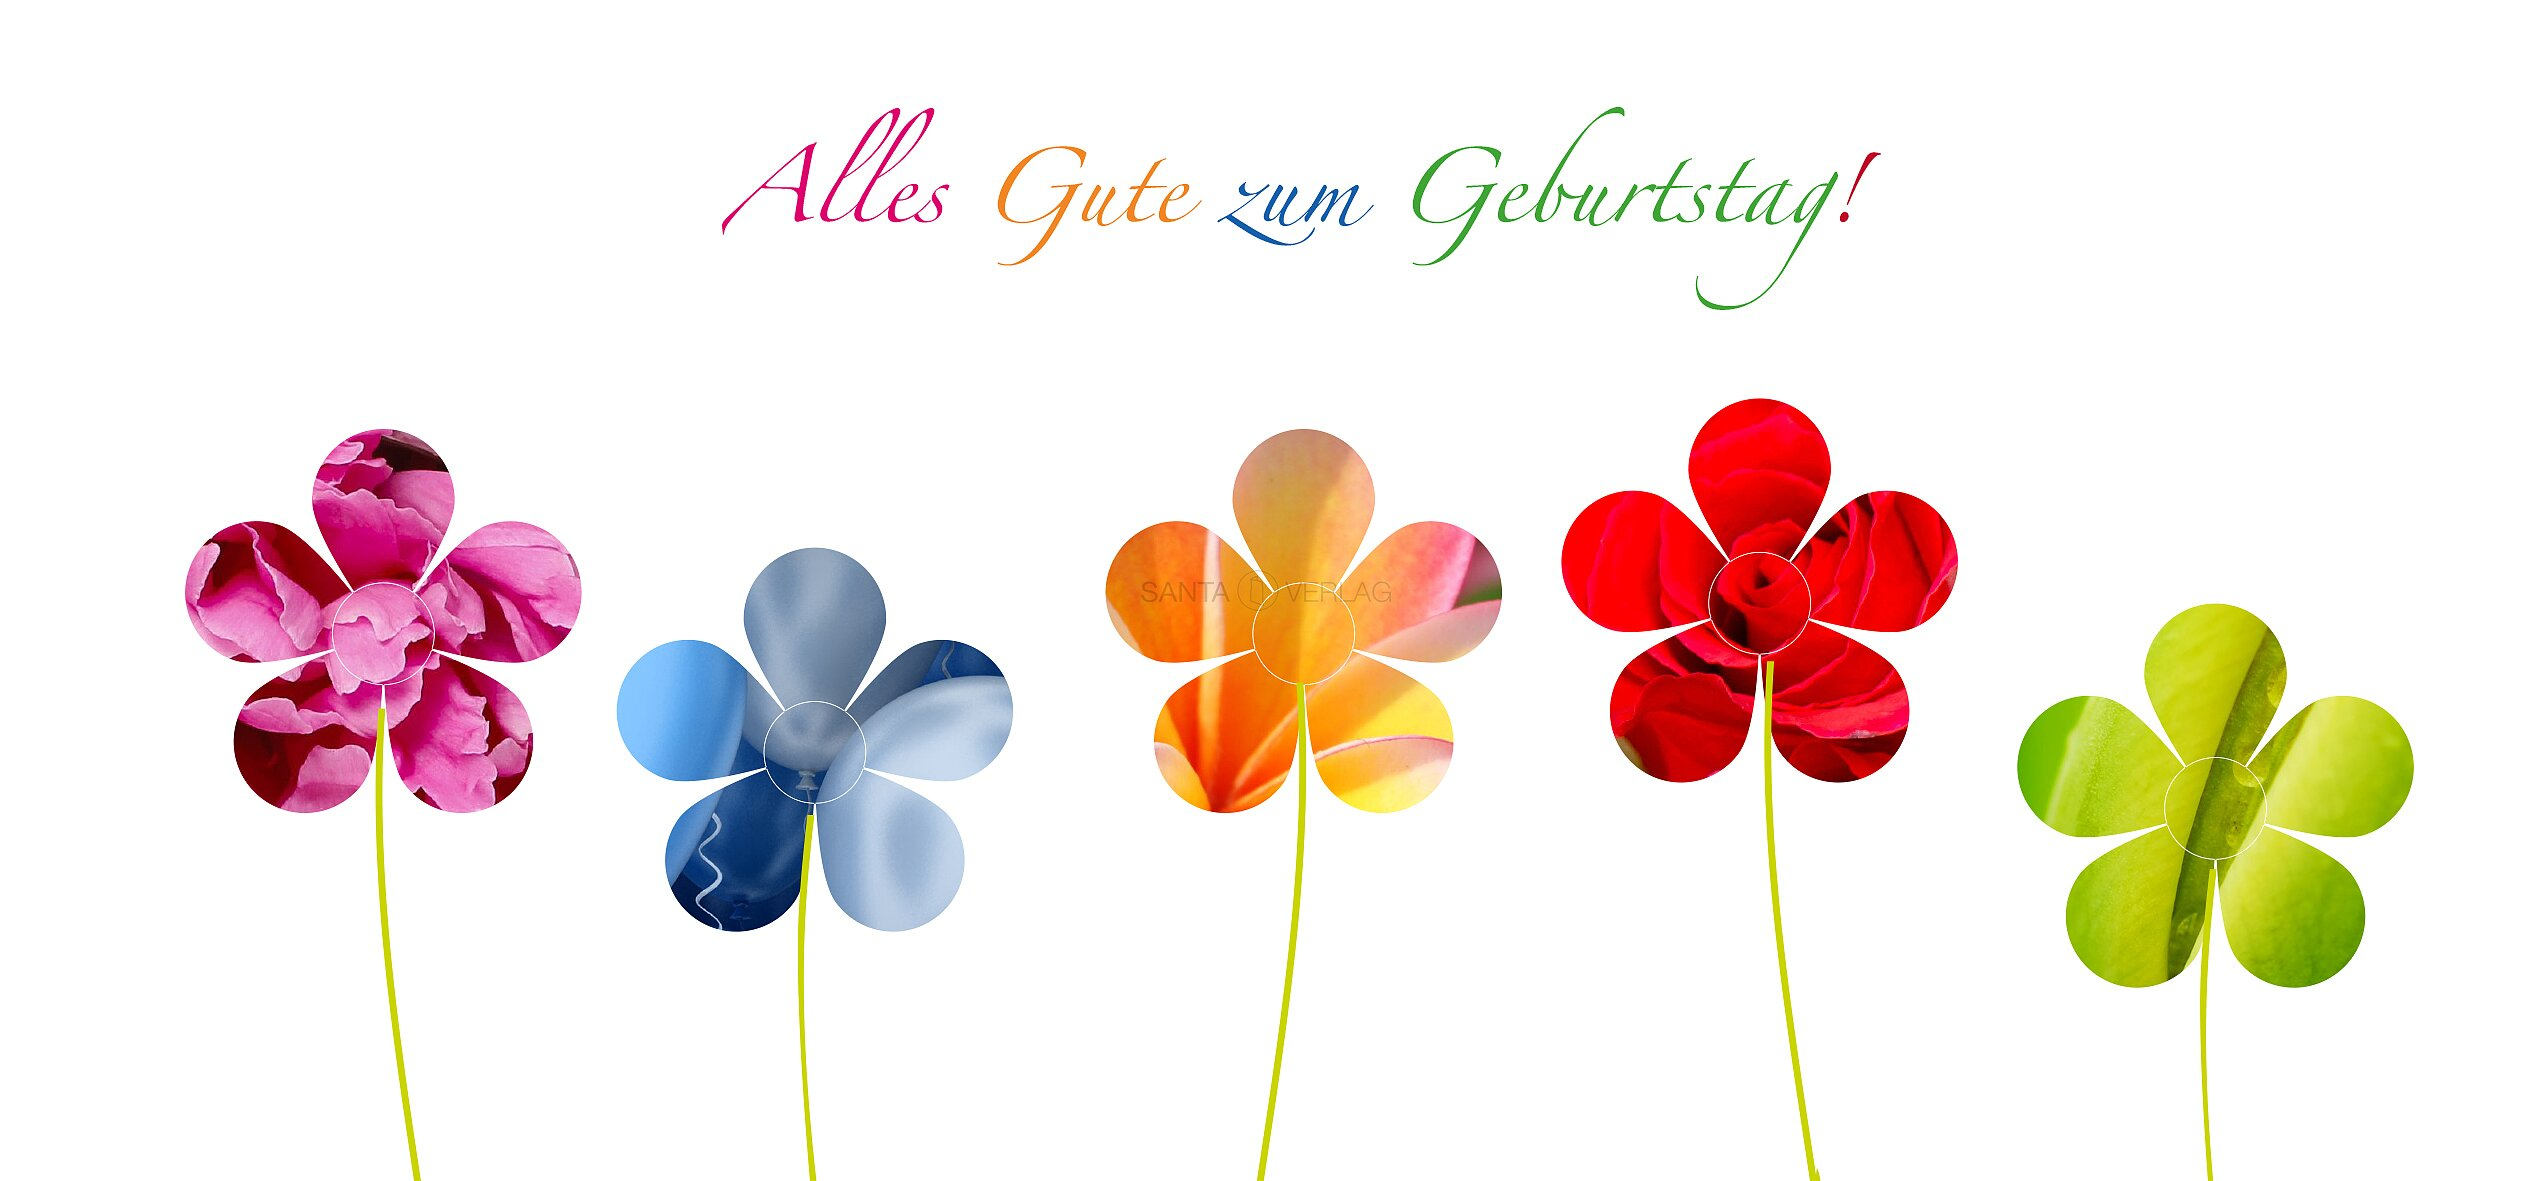 gl u00fcckwunschkarte blumen bunt  quot alles gute zum geburtstag happy birthday free clip art flowers happy birthday free clip art flowers